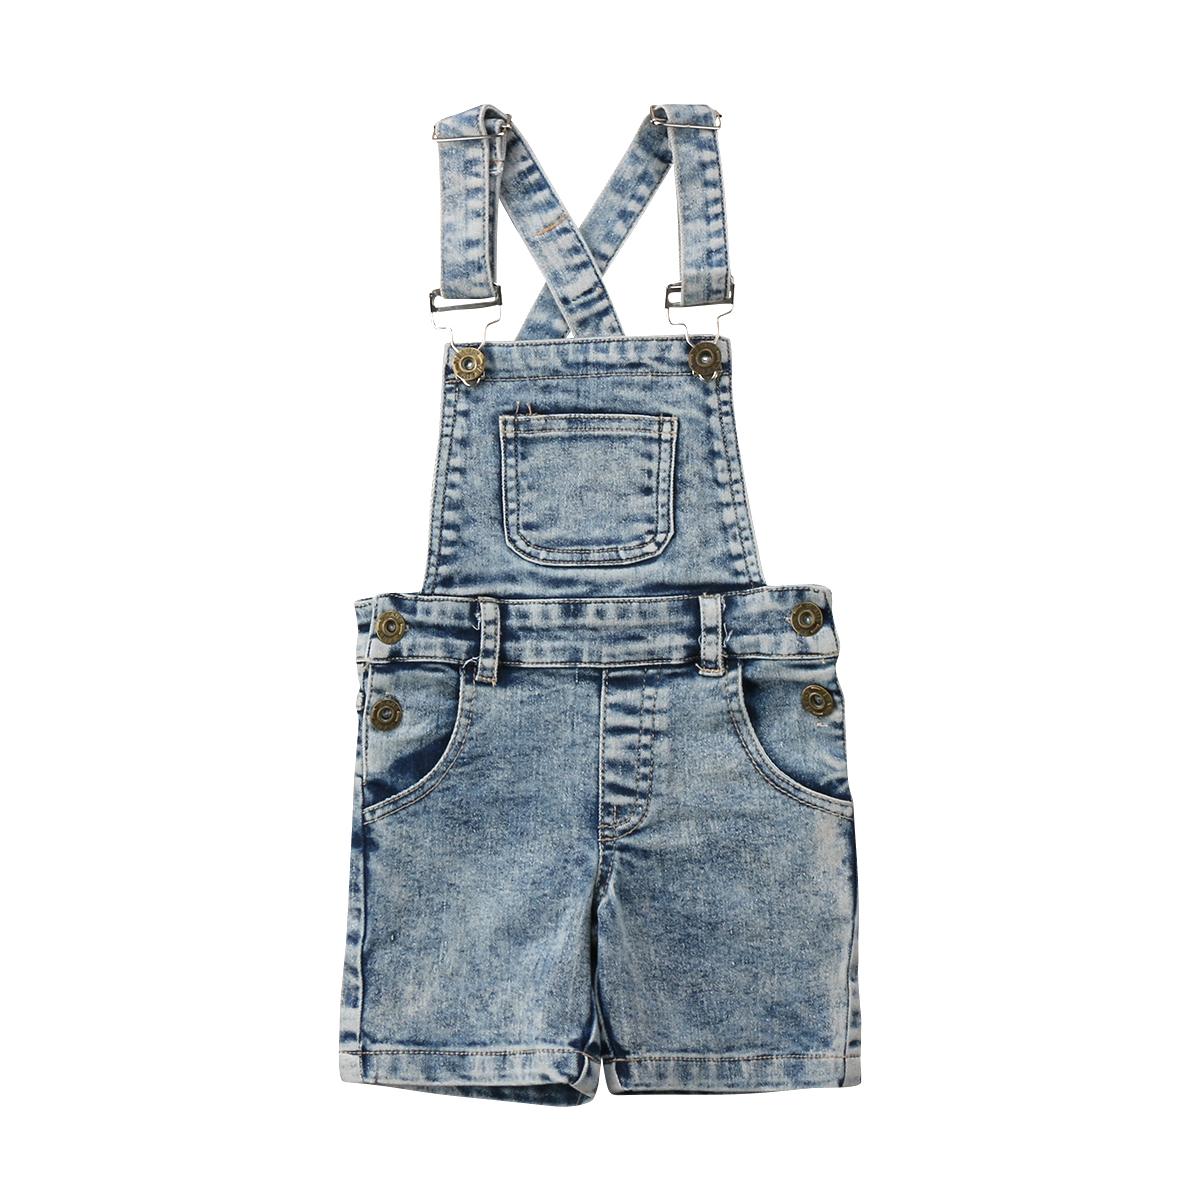 345f144d8612 Detail Feedback Questions about Toddler Kids Baby Boys Girls Jeans Deinm  Bib Pants Overalls Romper Casual Outfits Clothes Girl Clothes Summer New 6M  6T on ...